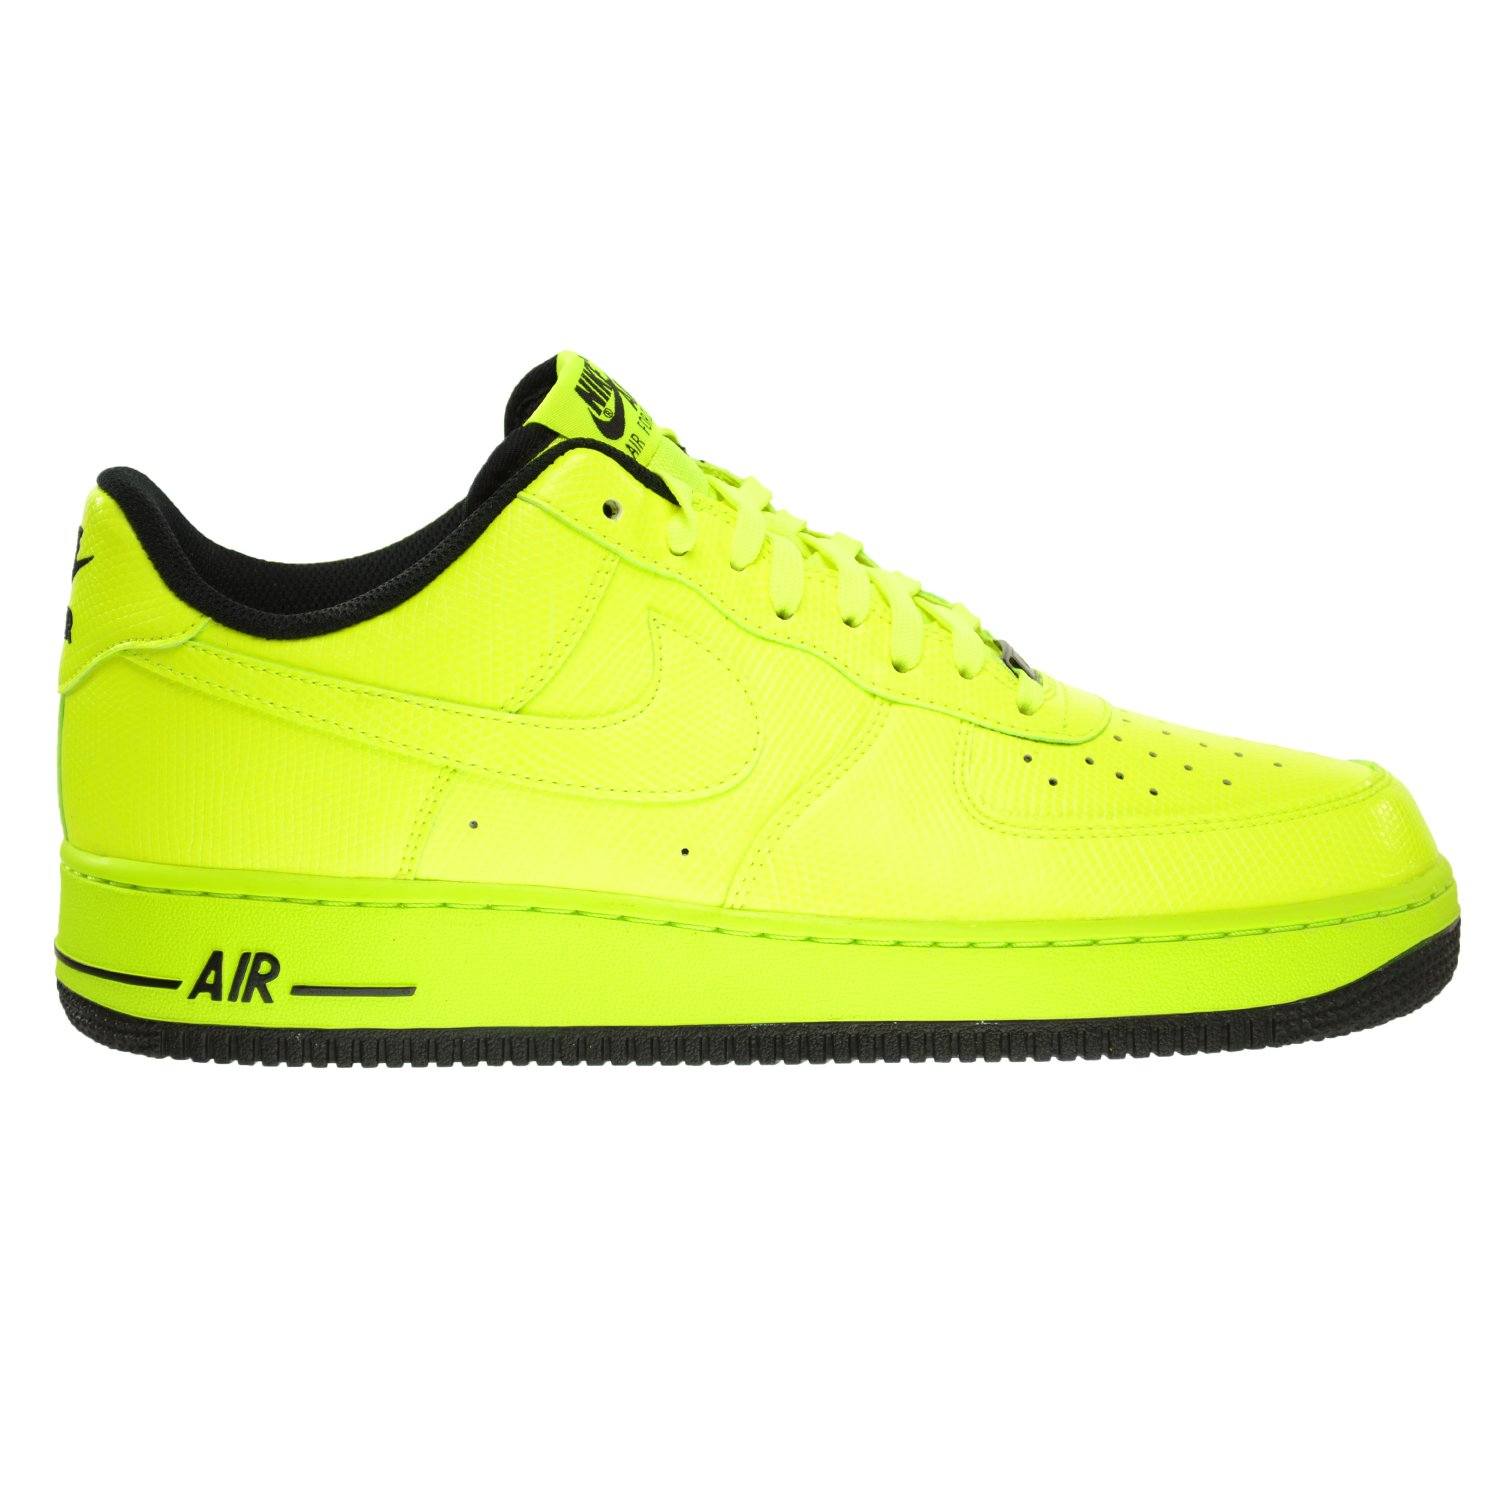 Nike Air Force 1 Men's Shoes Volt/Volt-Black 488298-703